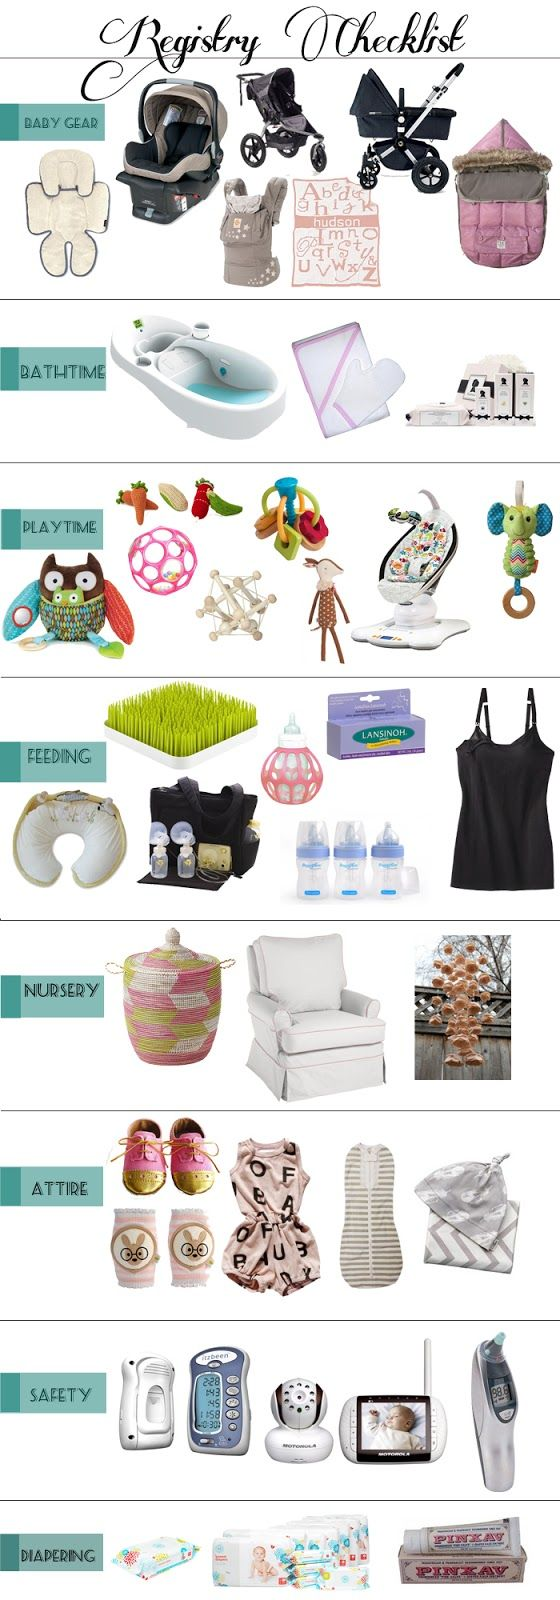 Someday this will be useful! Great for gift buying at the moment!!!! #Baby #Registry #checklist